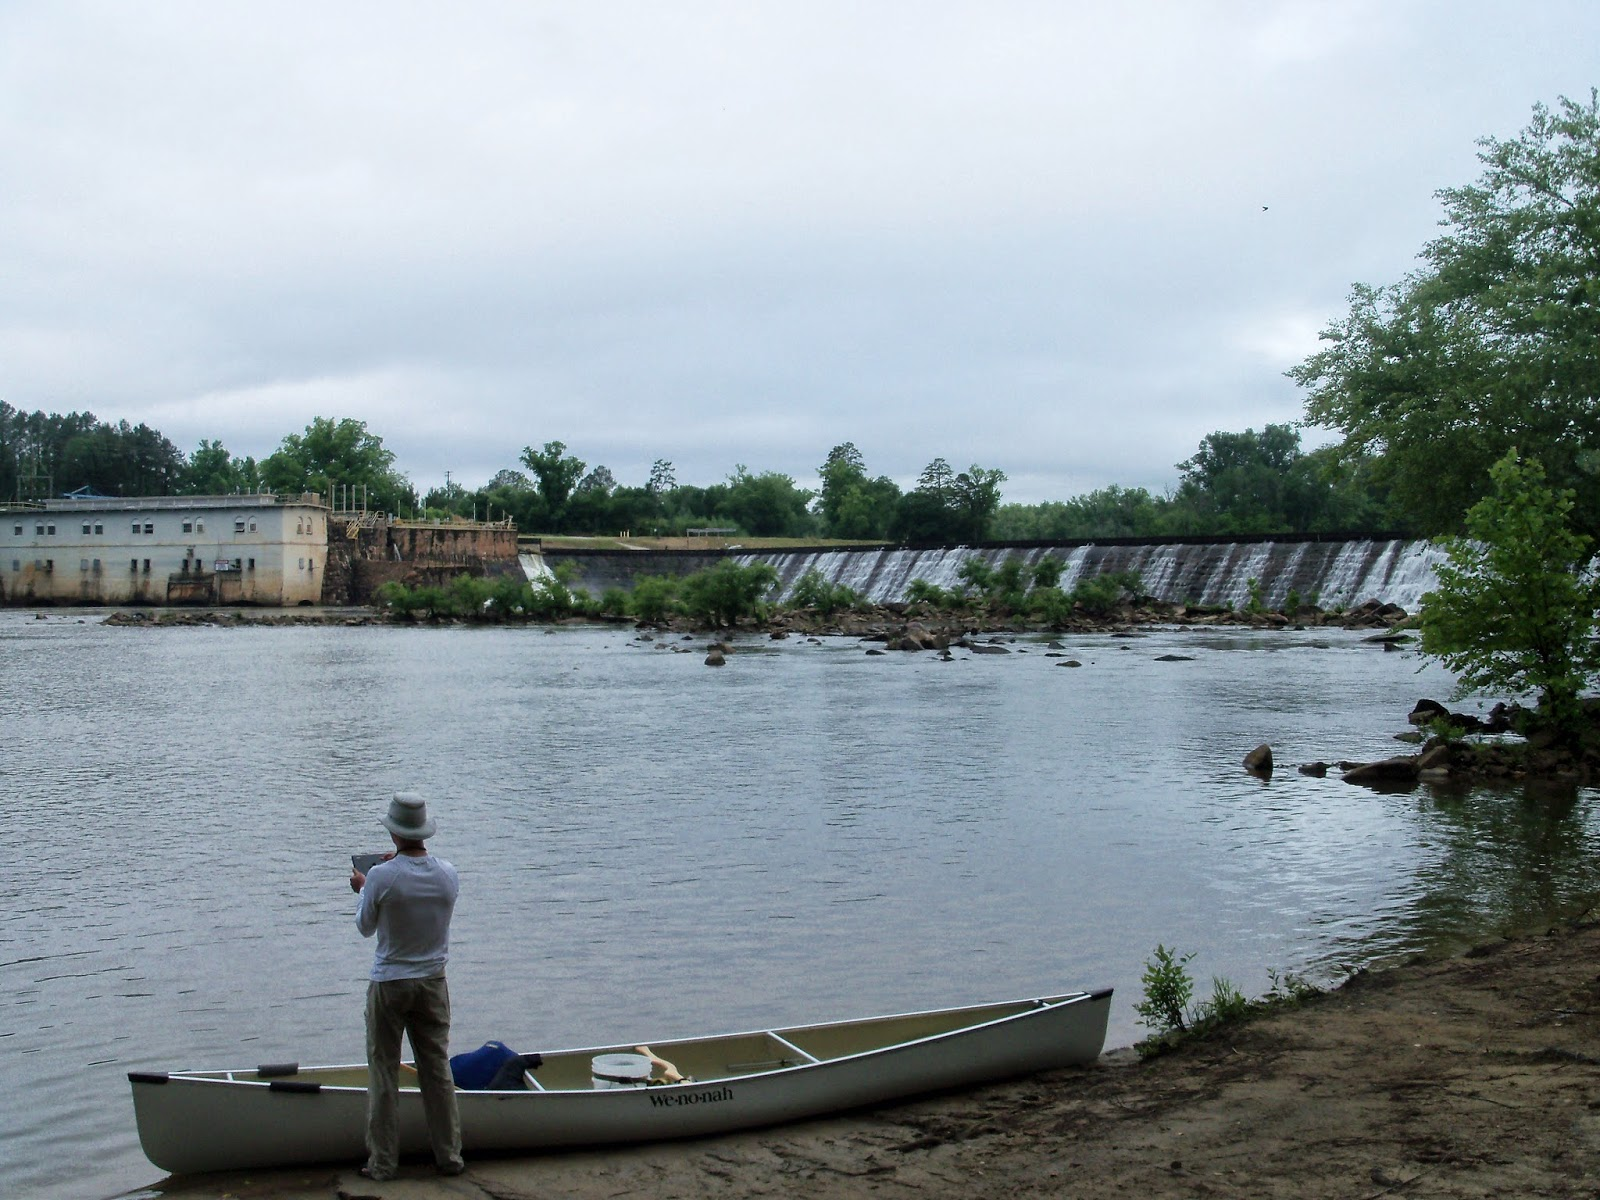 the water level just below the dam was right around 2 000 cfs after getting pictures of the dam we shifted our focus downstream